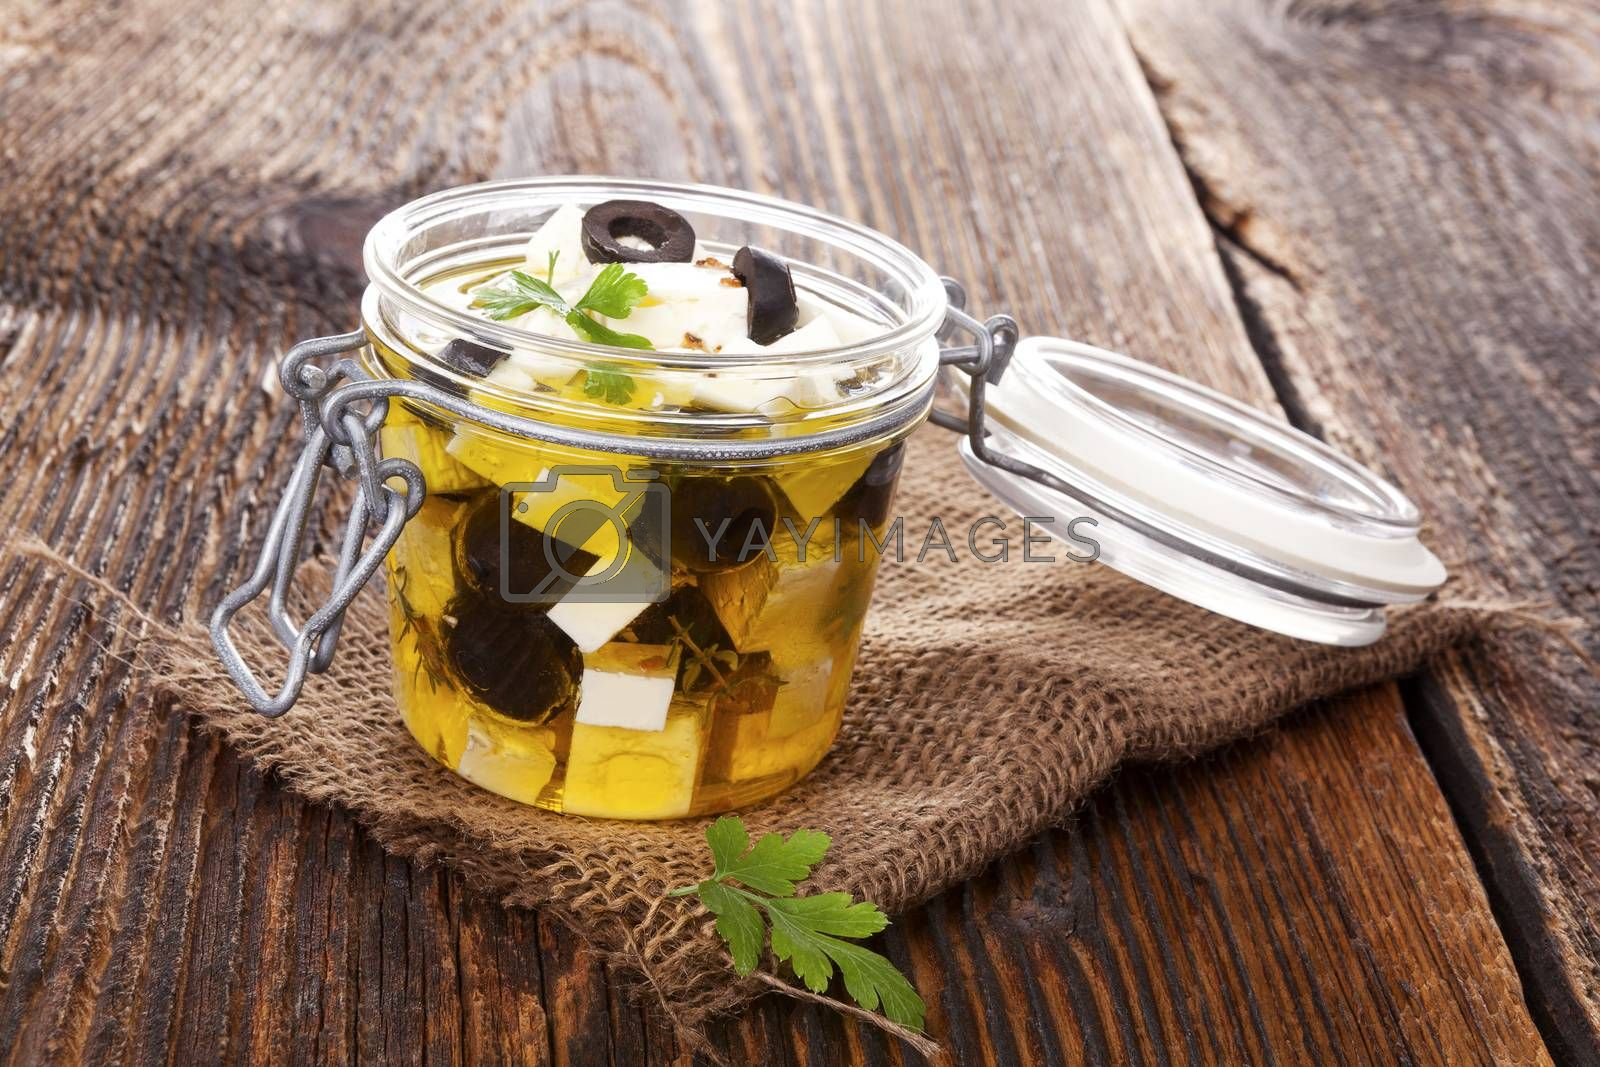 Marinated feta cheese in glass jar on brown wooden background. Culinary marinated cheese, rustic styles.